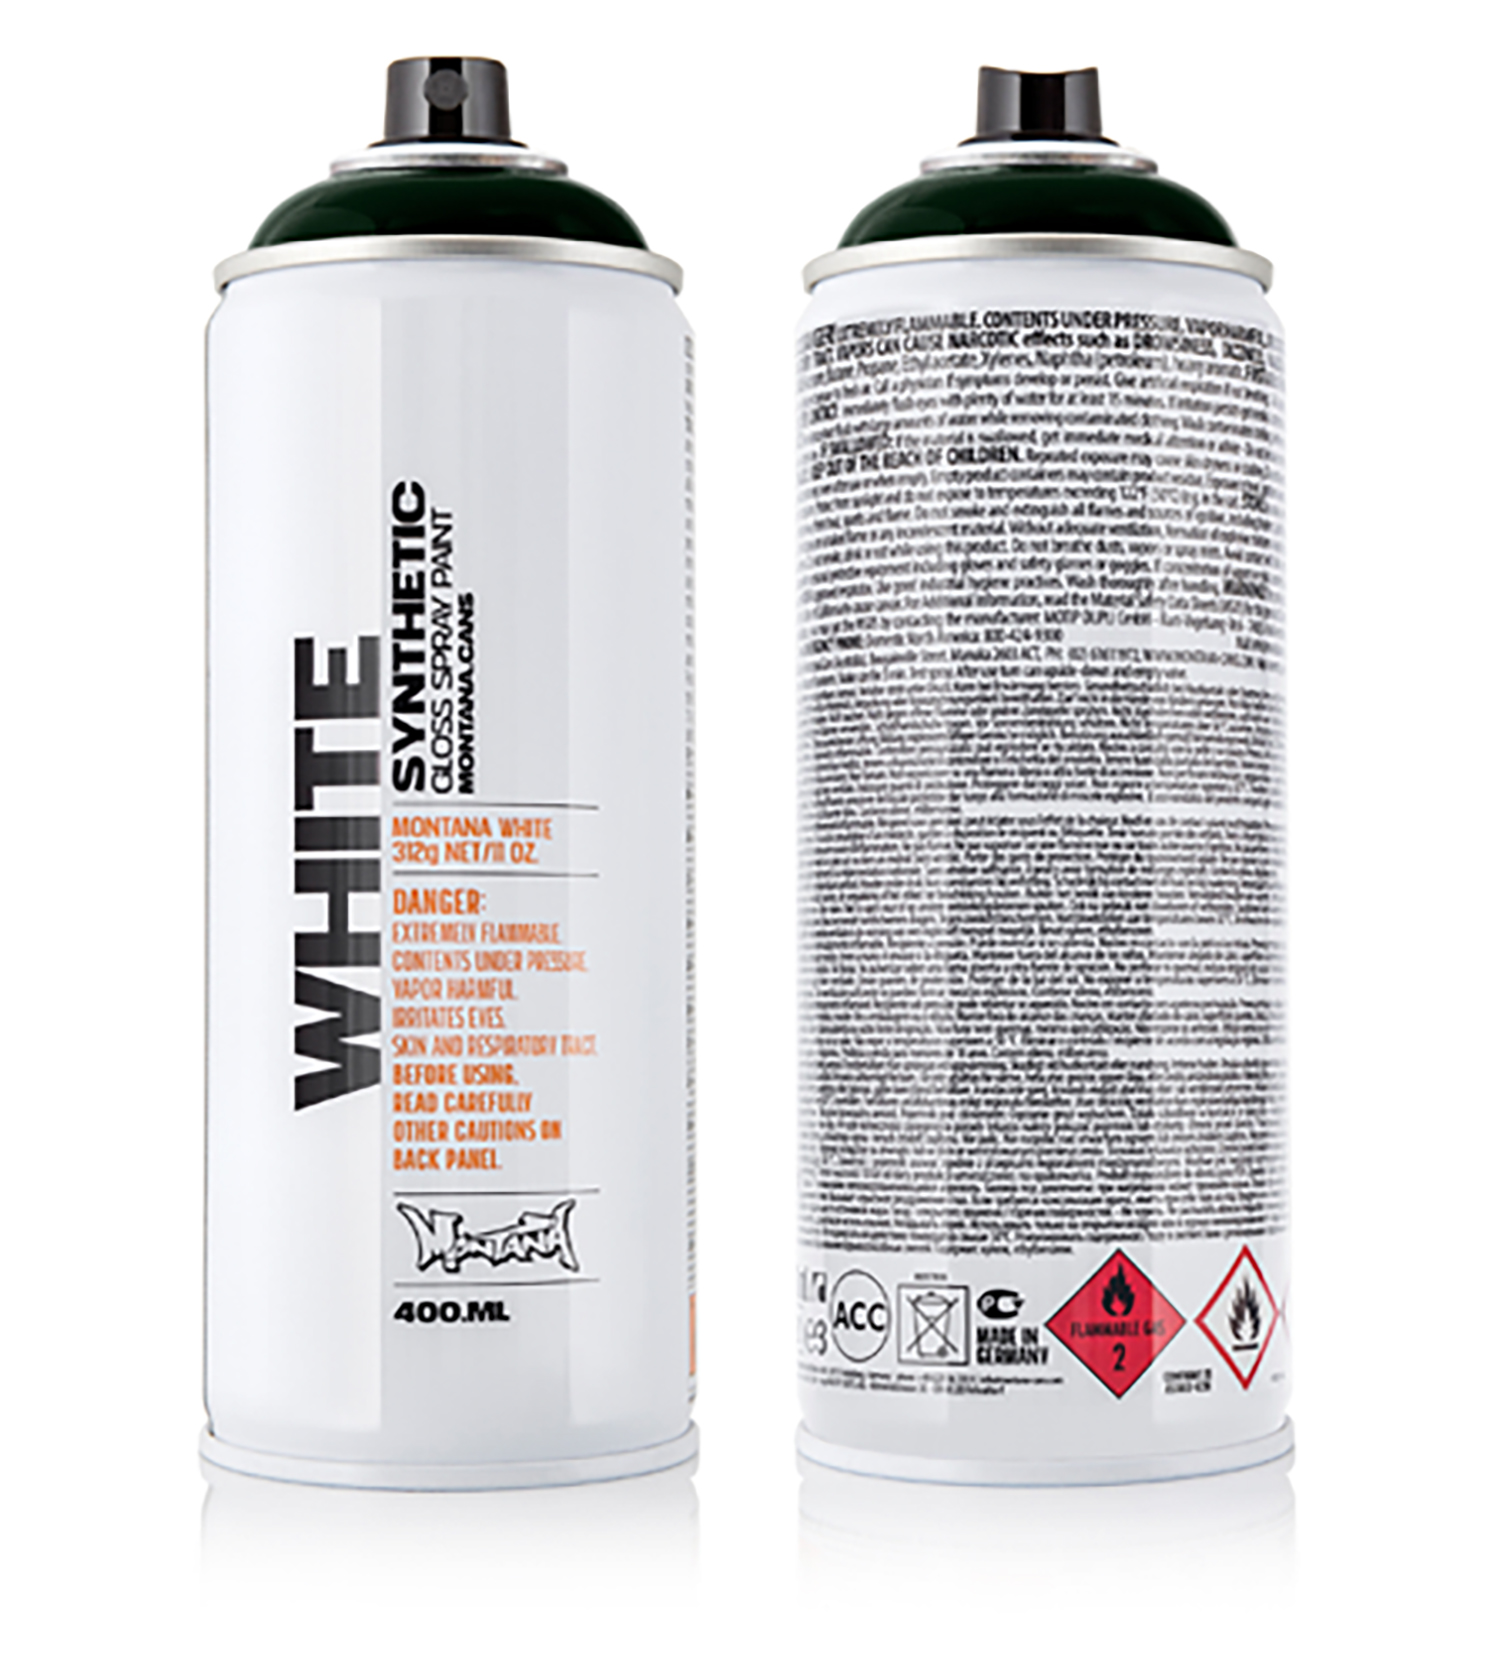 MONTANA-WHITE-SPRAY-400ML-6080